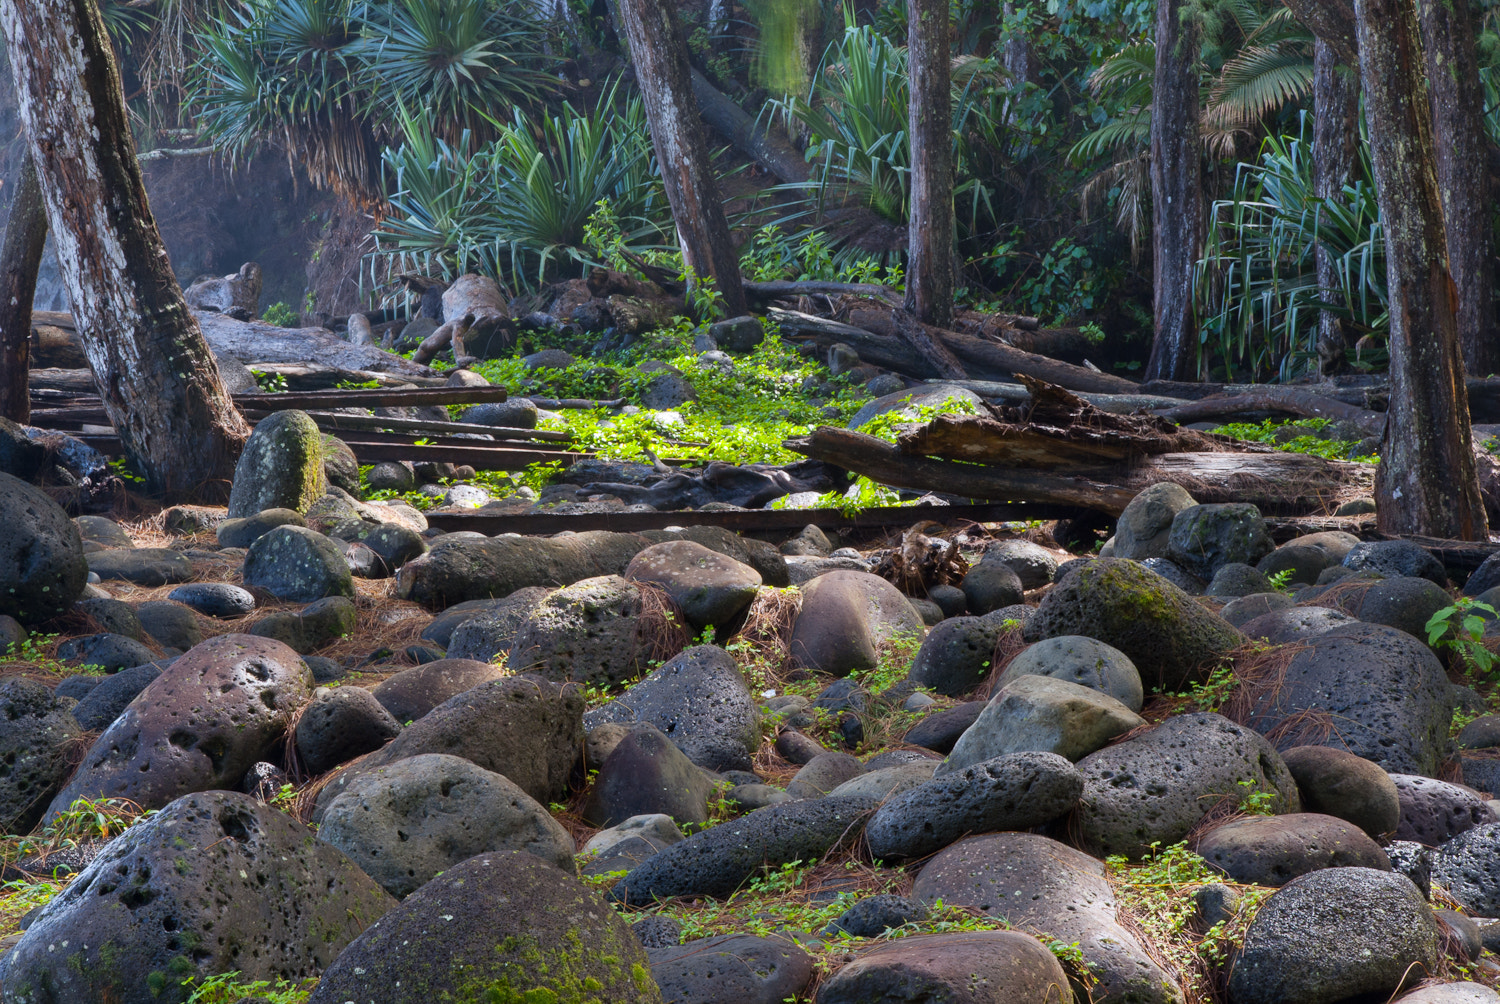 Photograph Tropical Forest by Scott Hull on 500px